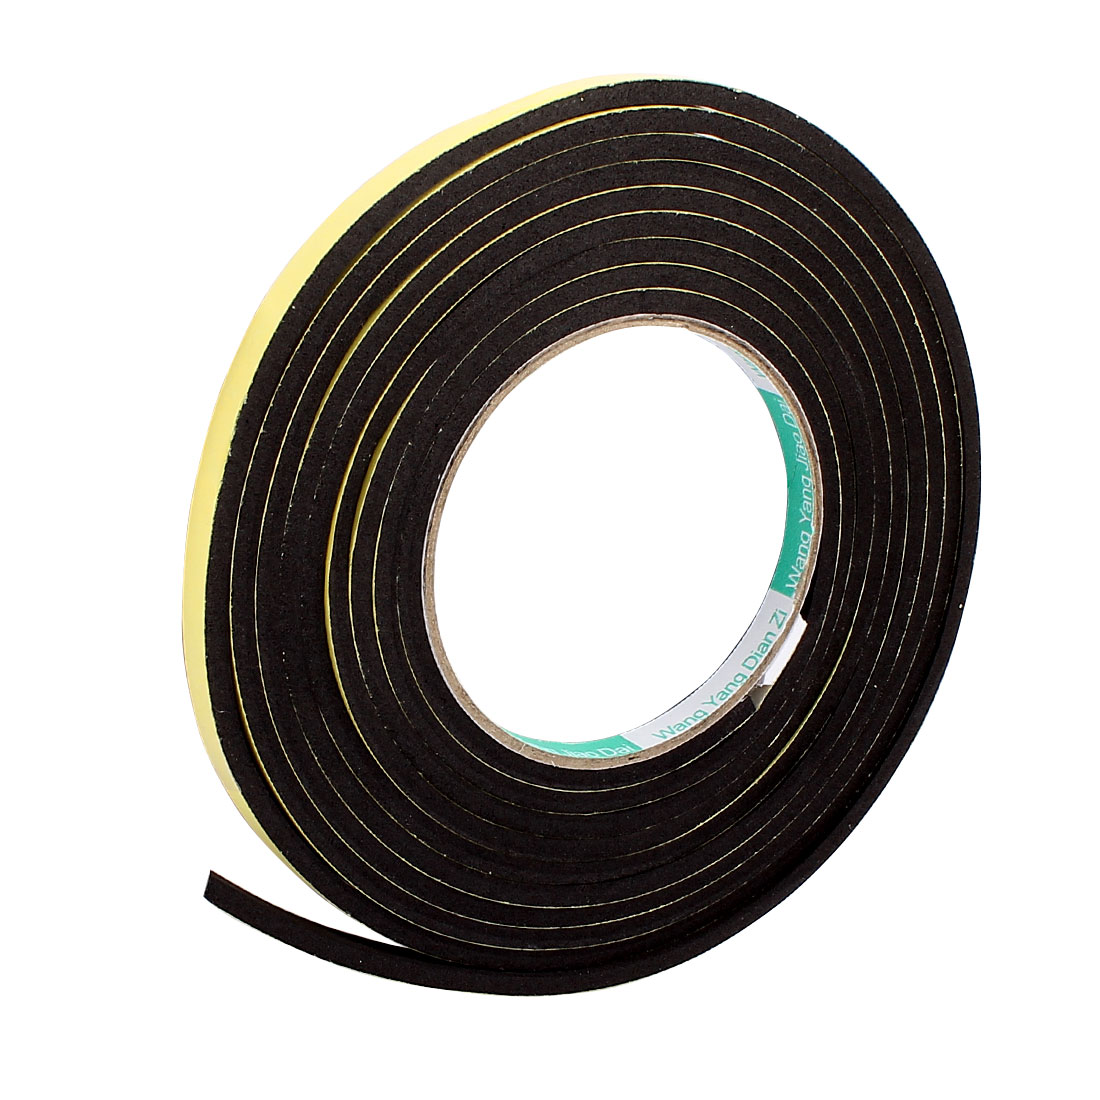 0.8CM Width 3.5Meters Long 4MM Thick Single Sided Sealing Shockproof Sponge Tape